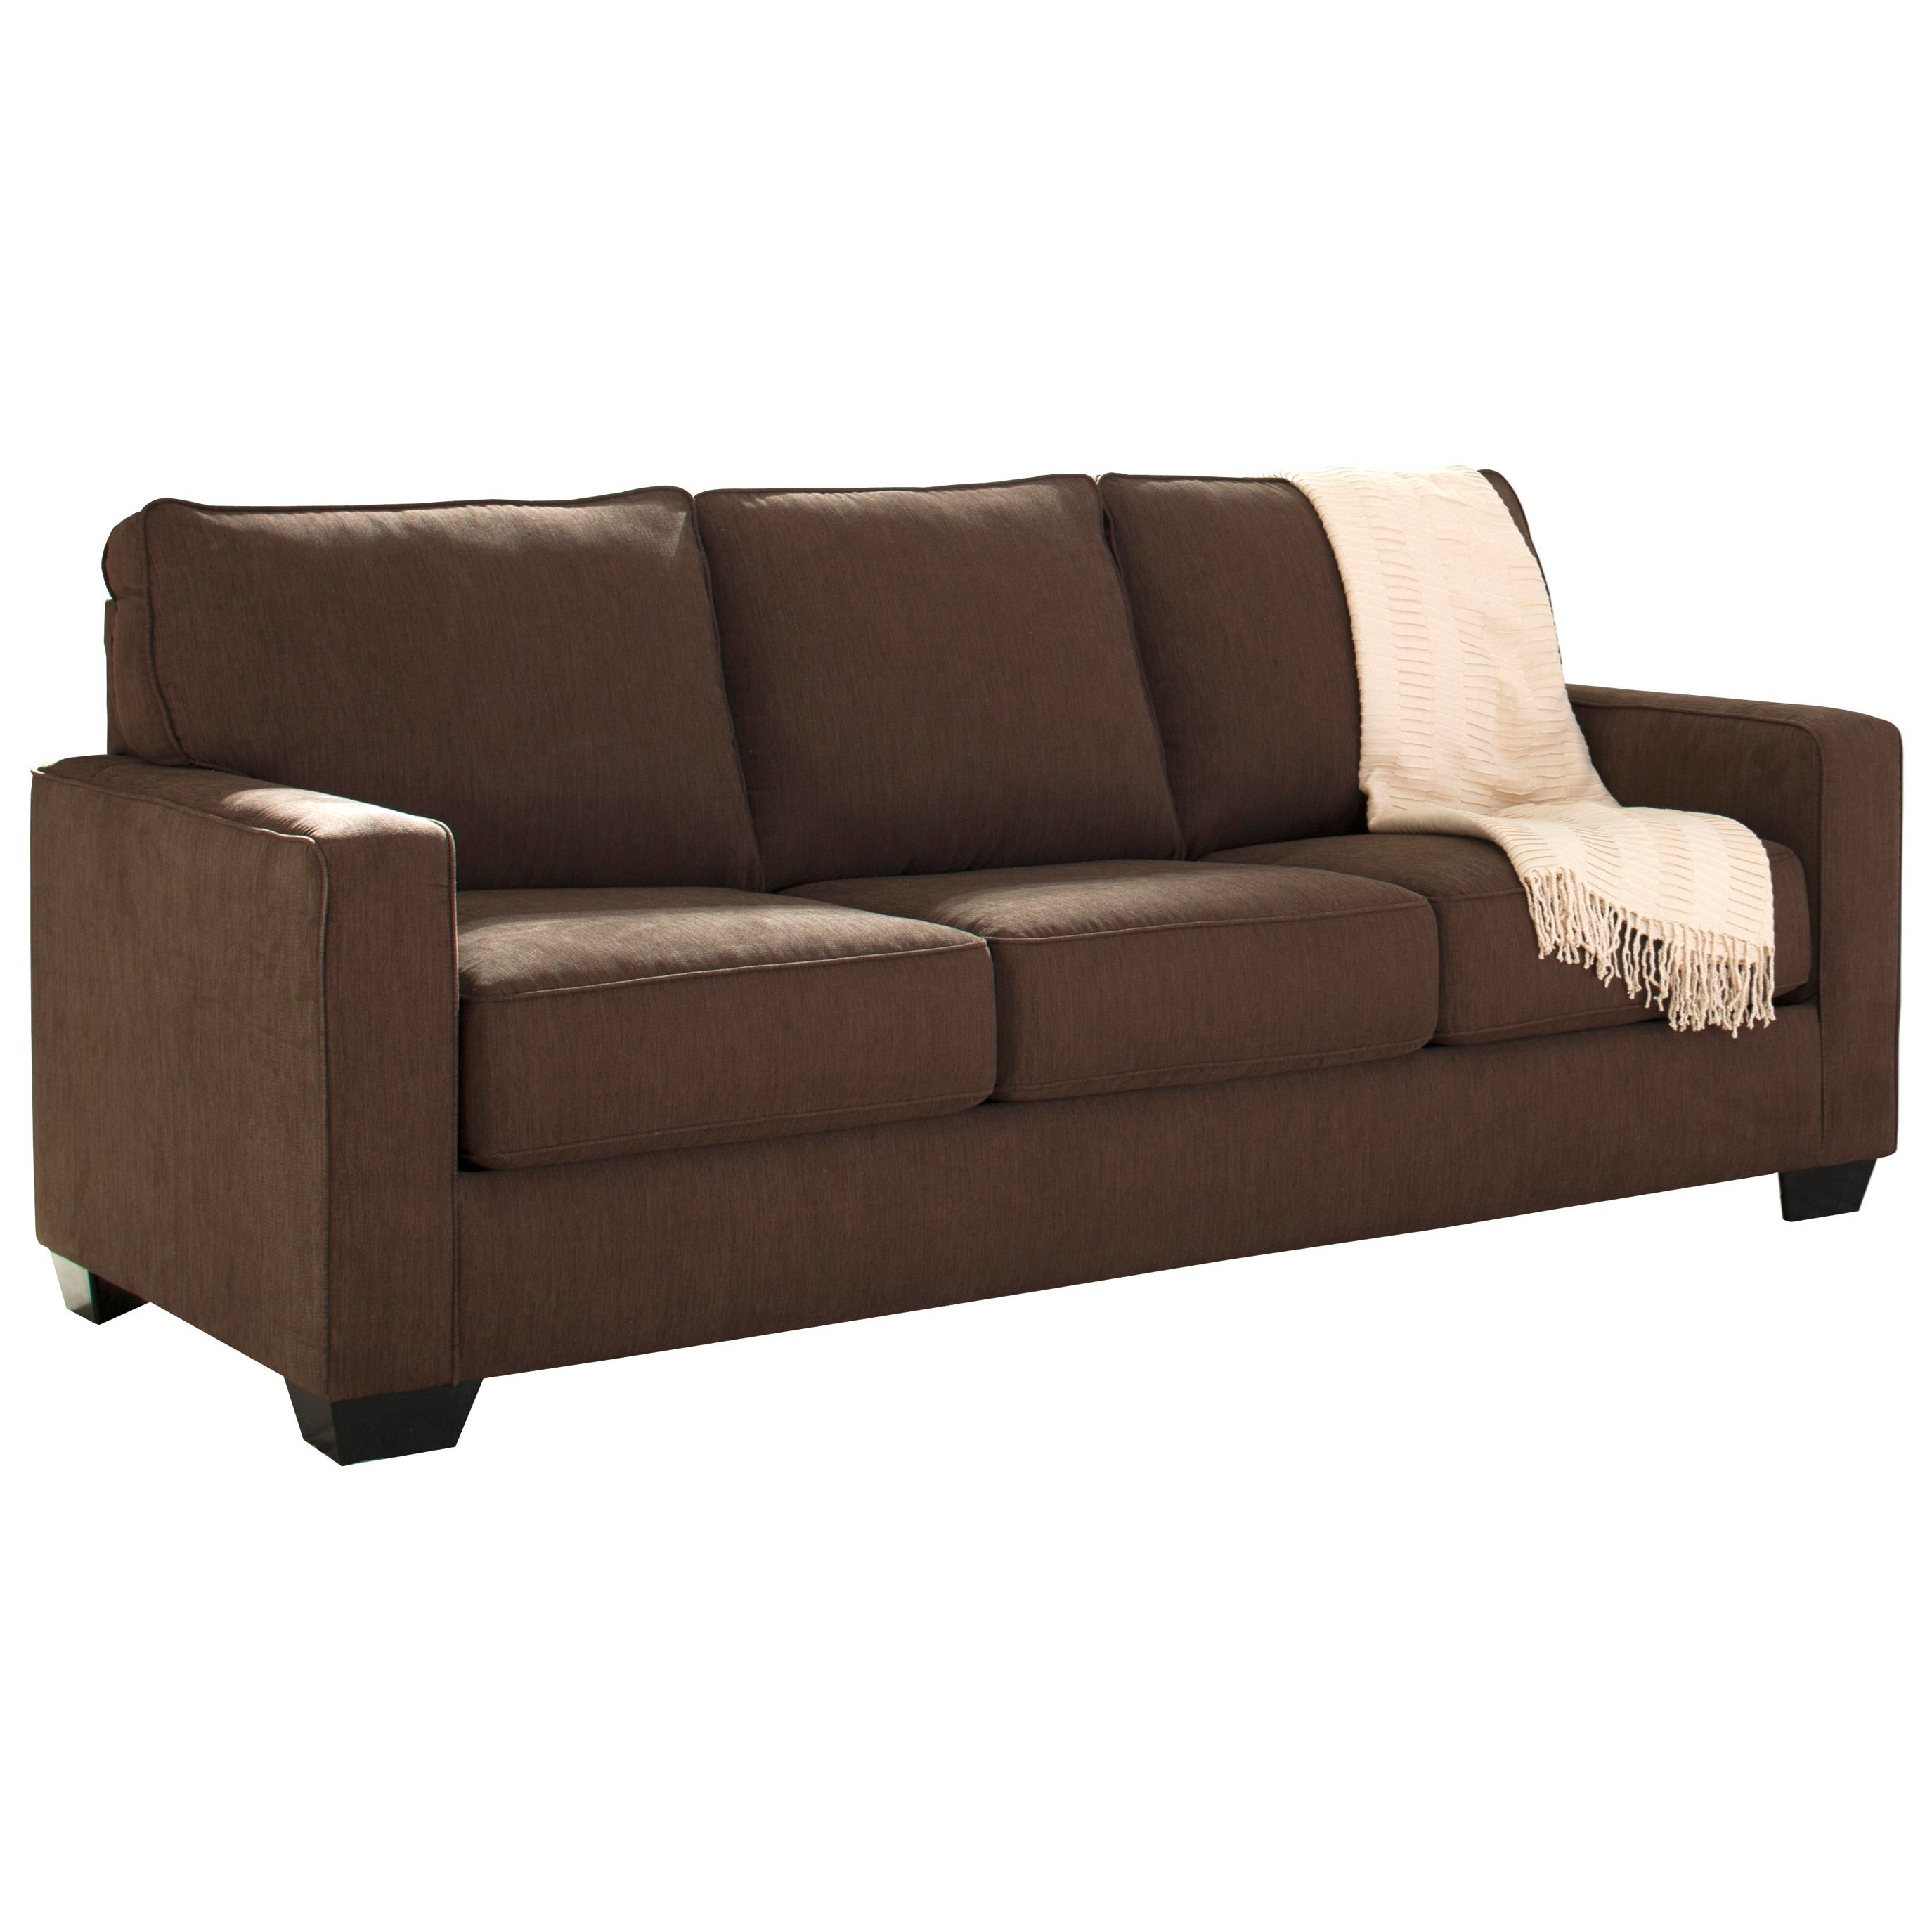 paris memory foam chair sofa bed boconcept cleaning signature design by ashley zeb 3590339 queen sleeper